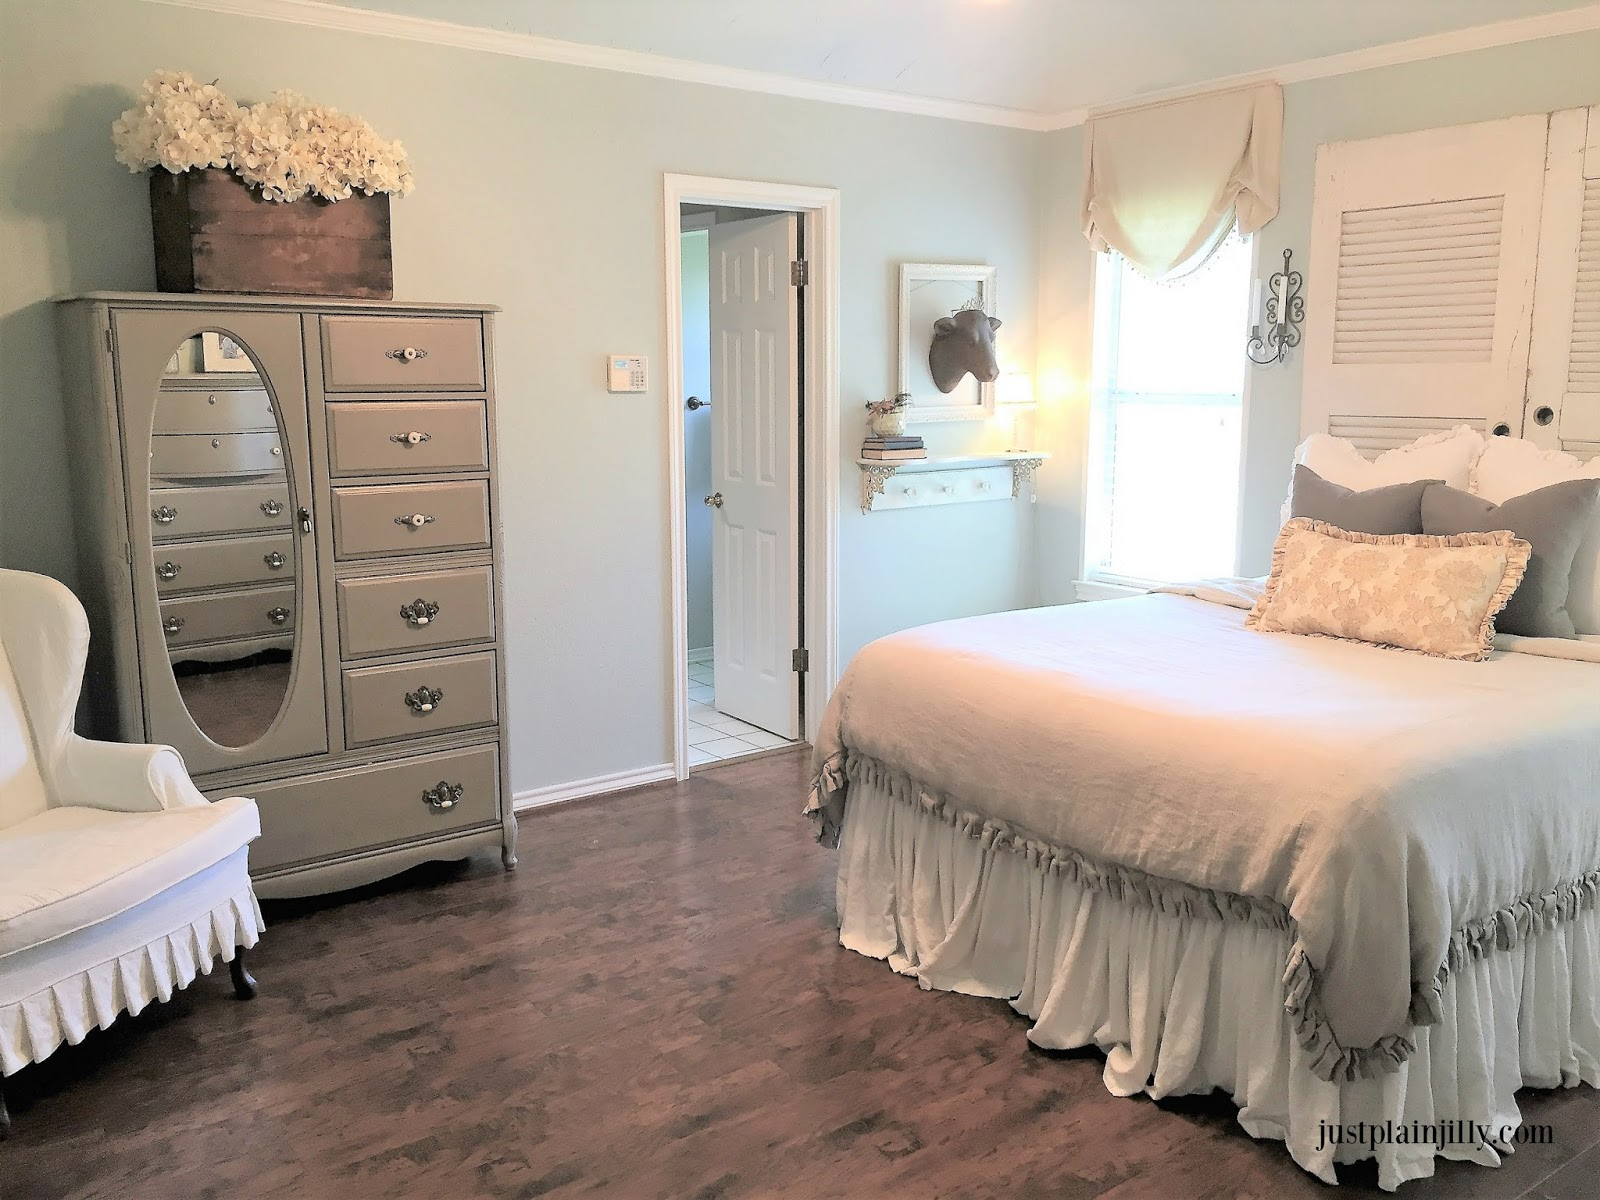 first friday home tour featuring just plain jilly poofing the